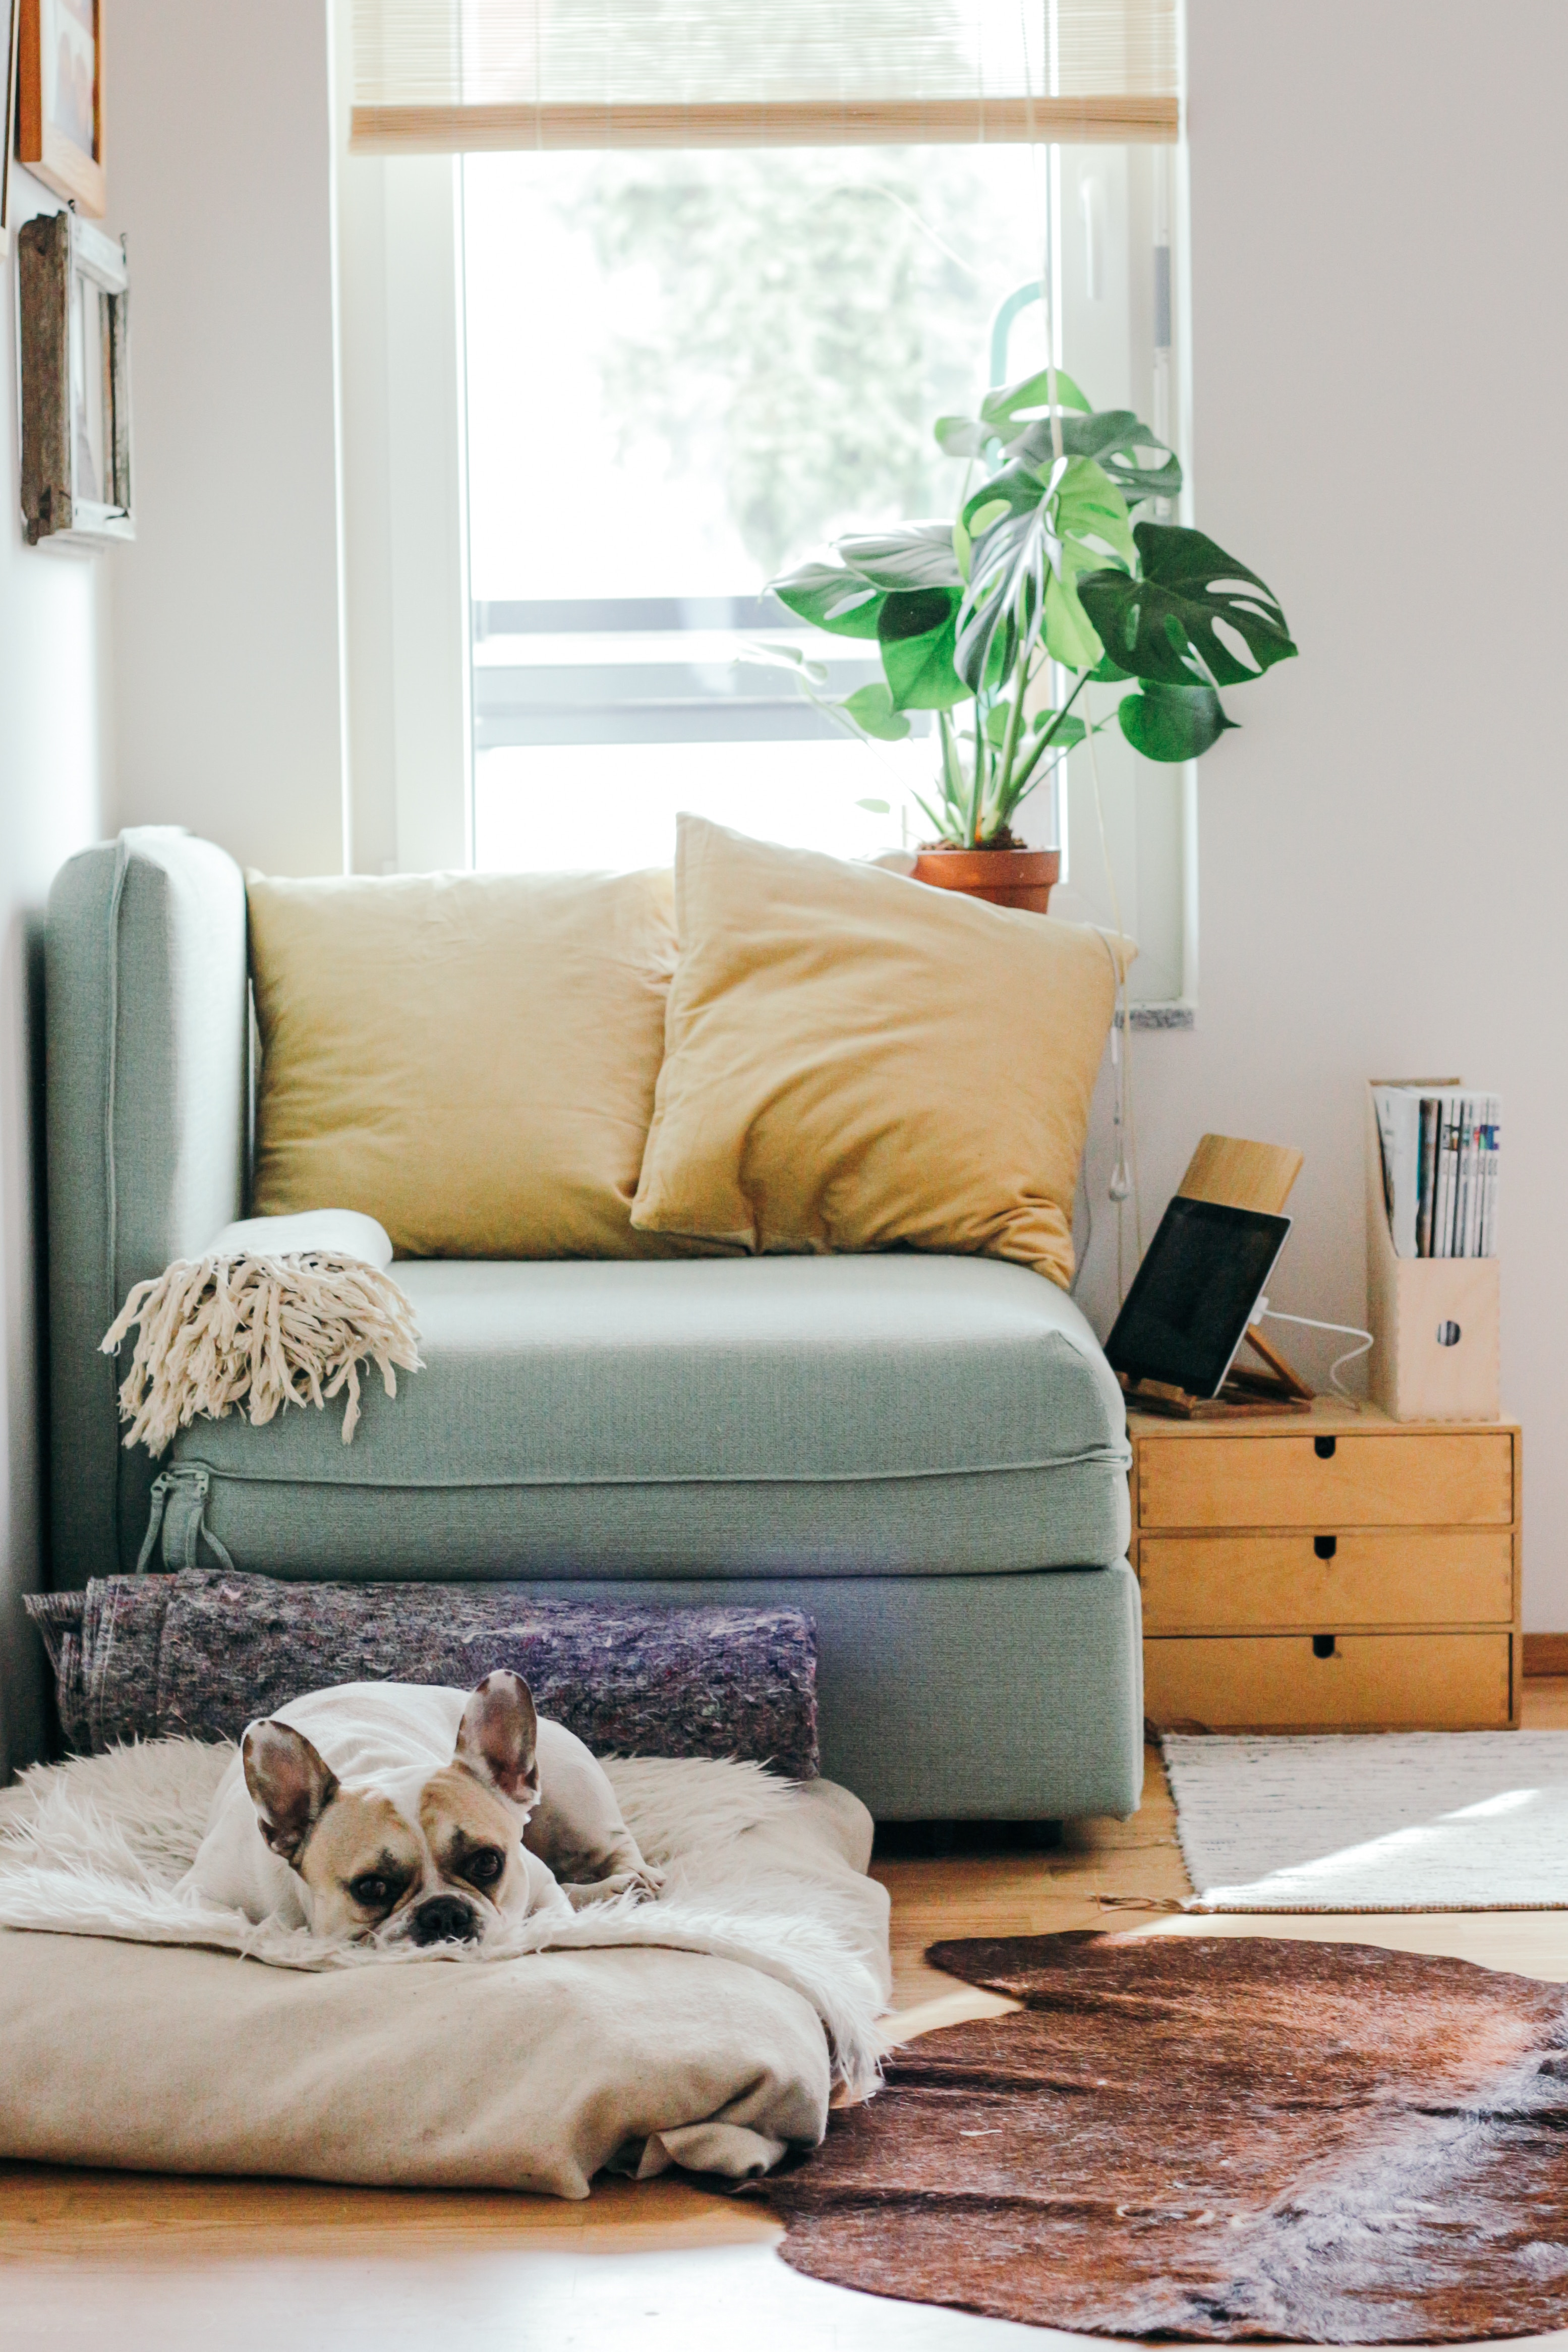 Cost of living can be a budgeting challenge. The rule of thumb is to spend less than 30 percent of your gross income on rent. This means you can afford other necessities, like utilities, groceries, and renters insurance.